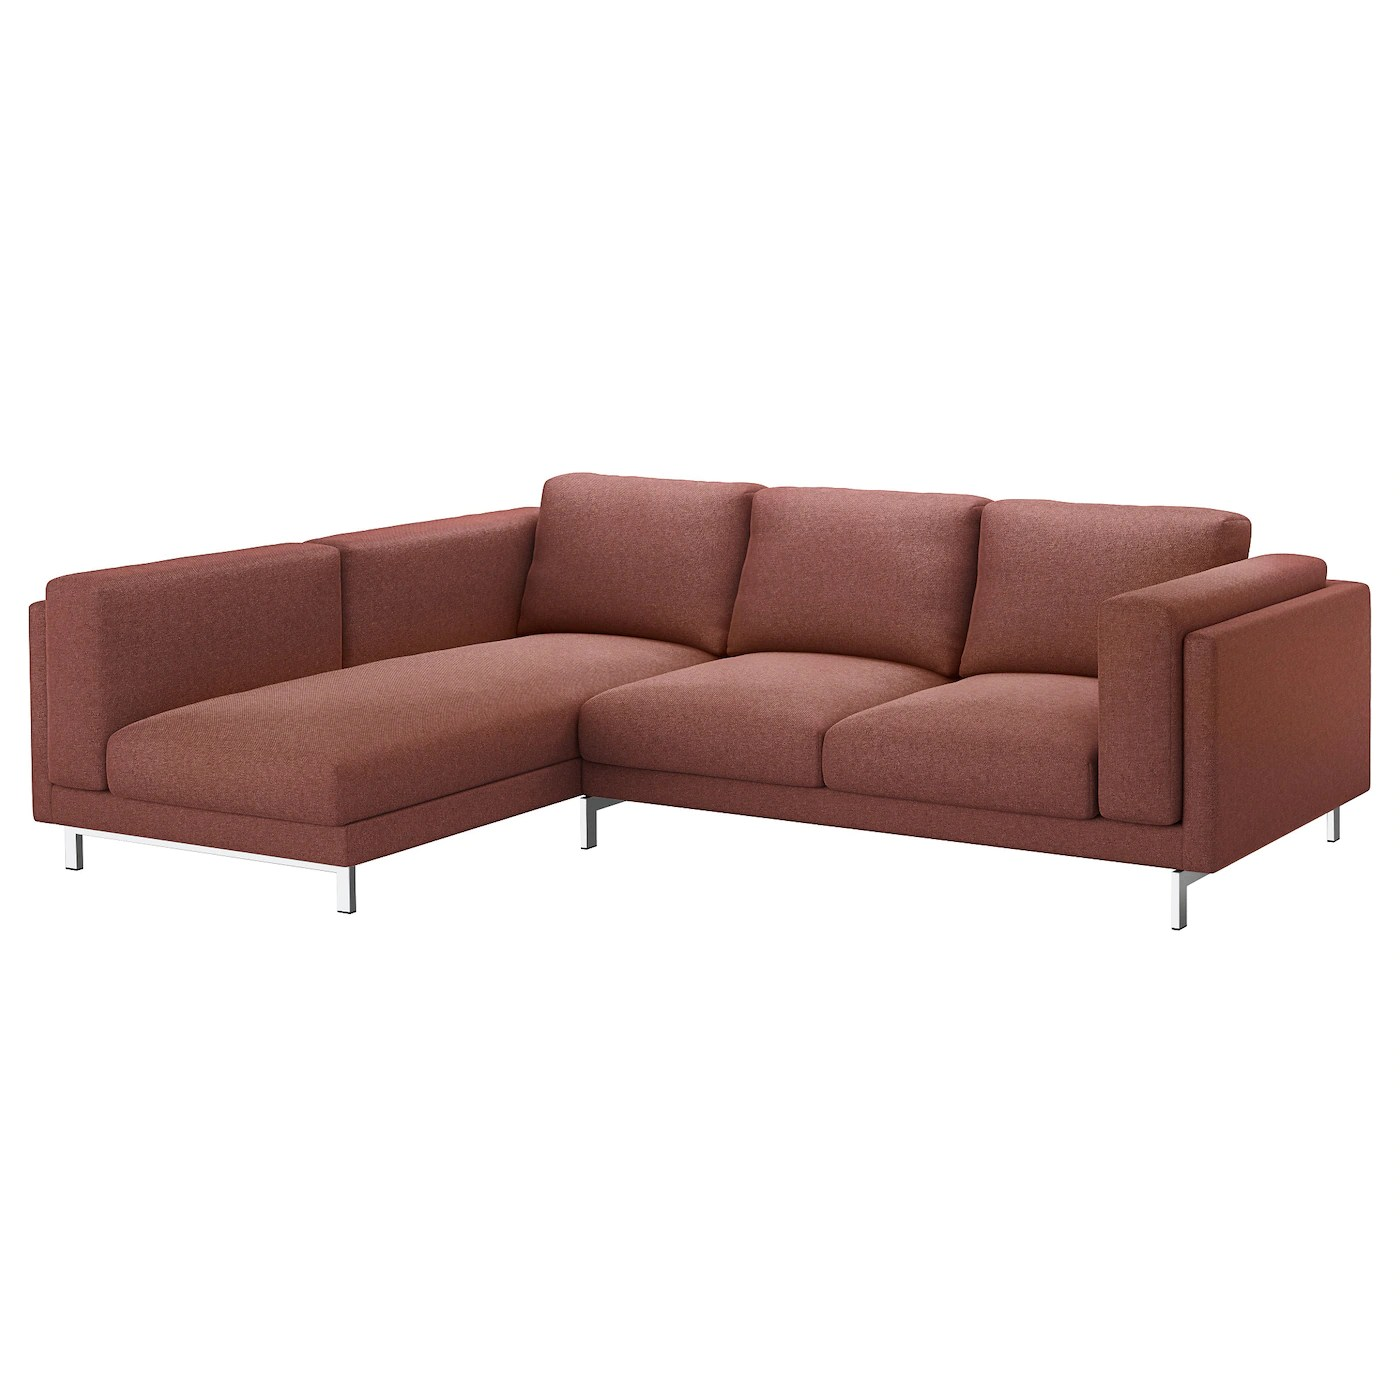 Ikea Sofa Nockeby Test Nockeby 3 Seat Sofa With Chaise Longue Left Tallmyra Rust